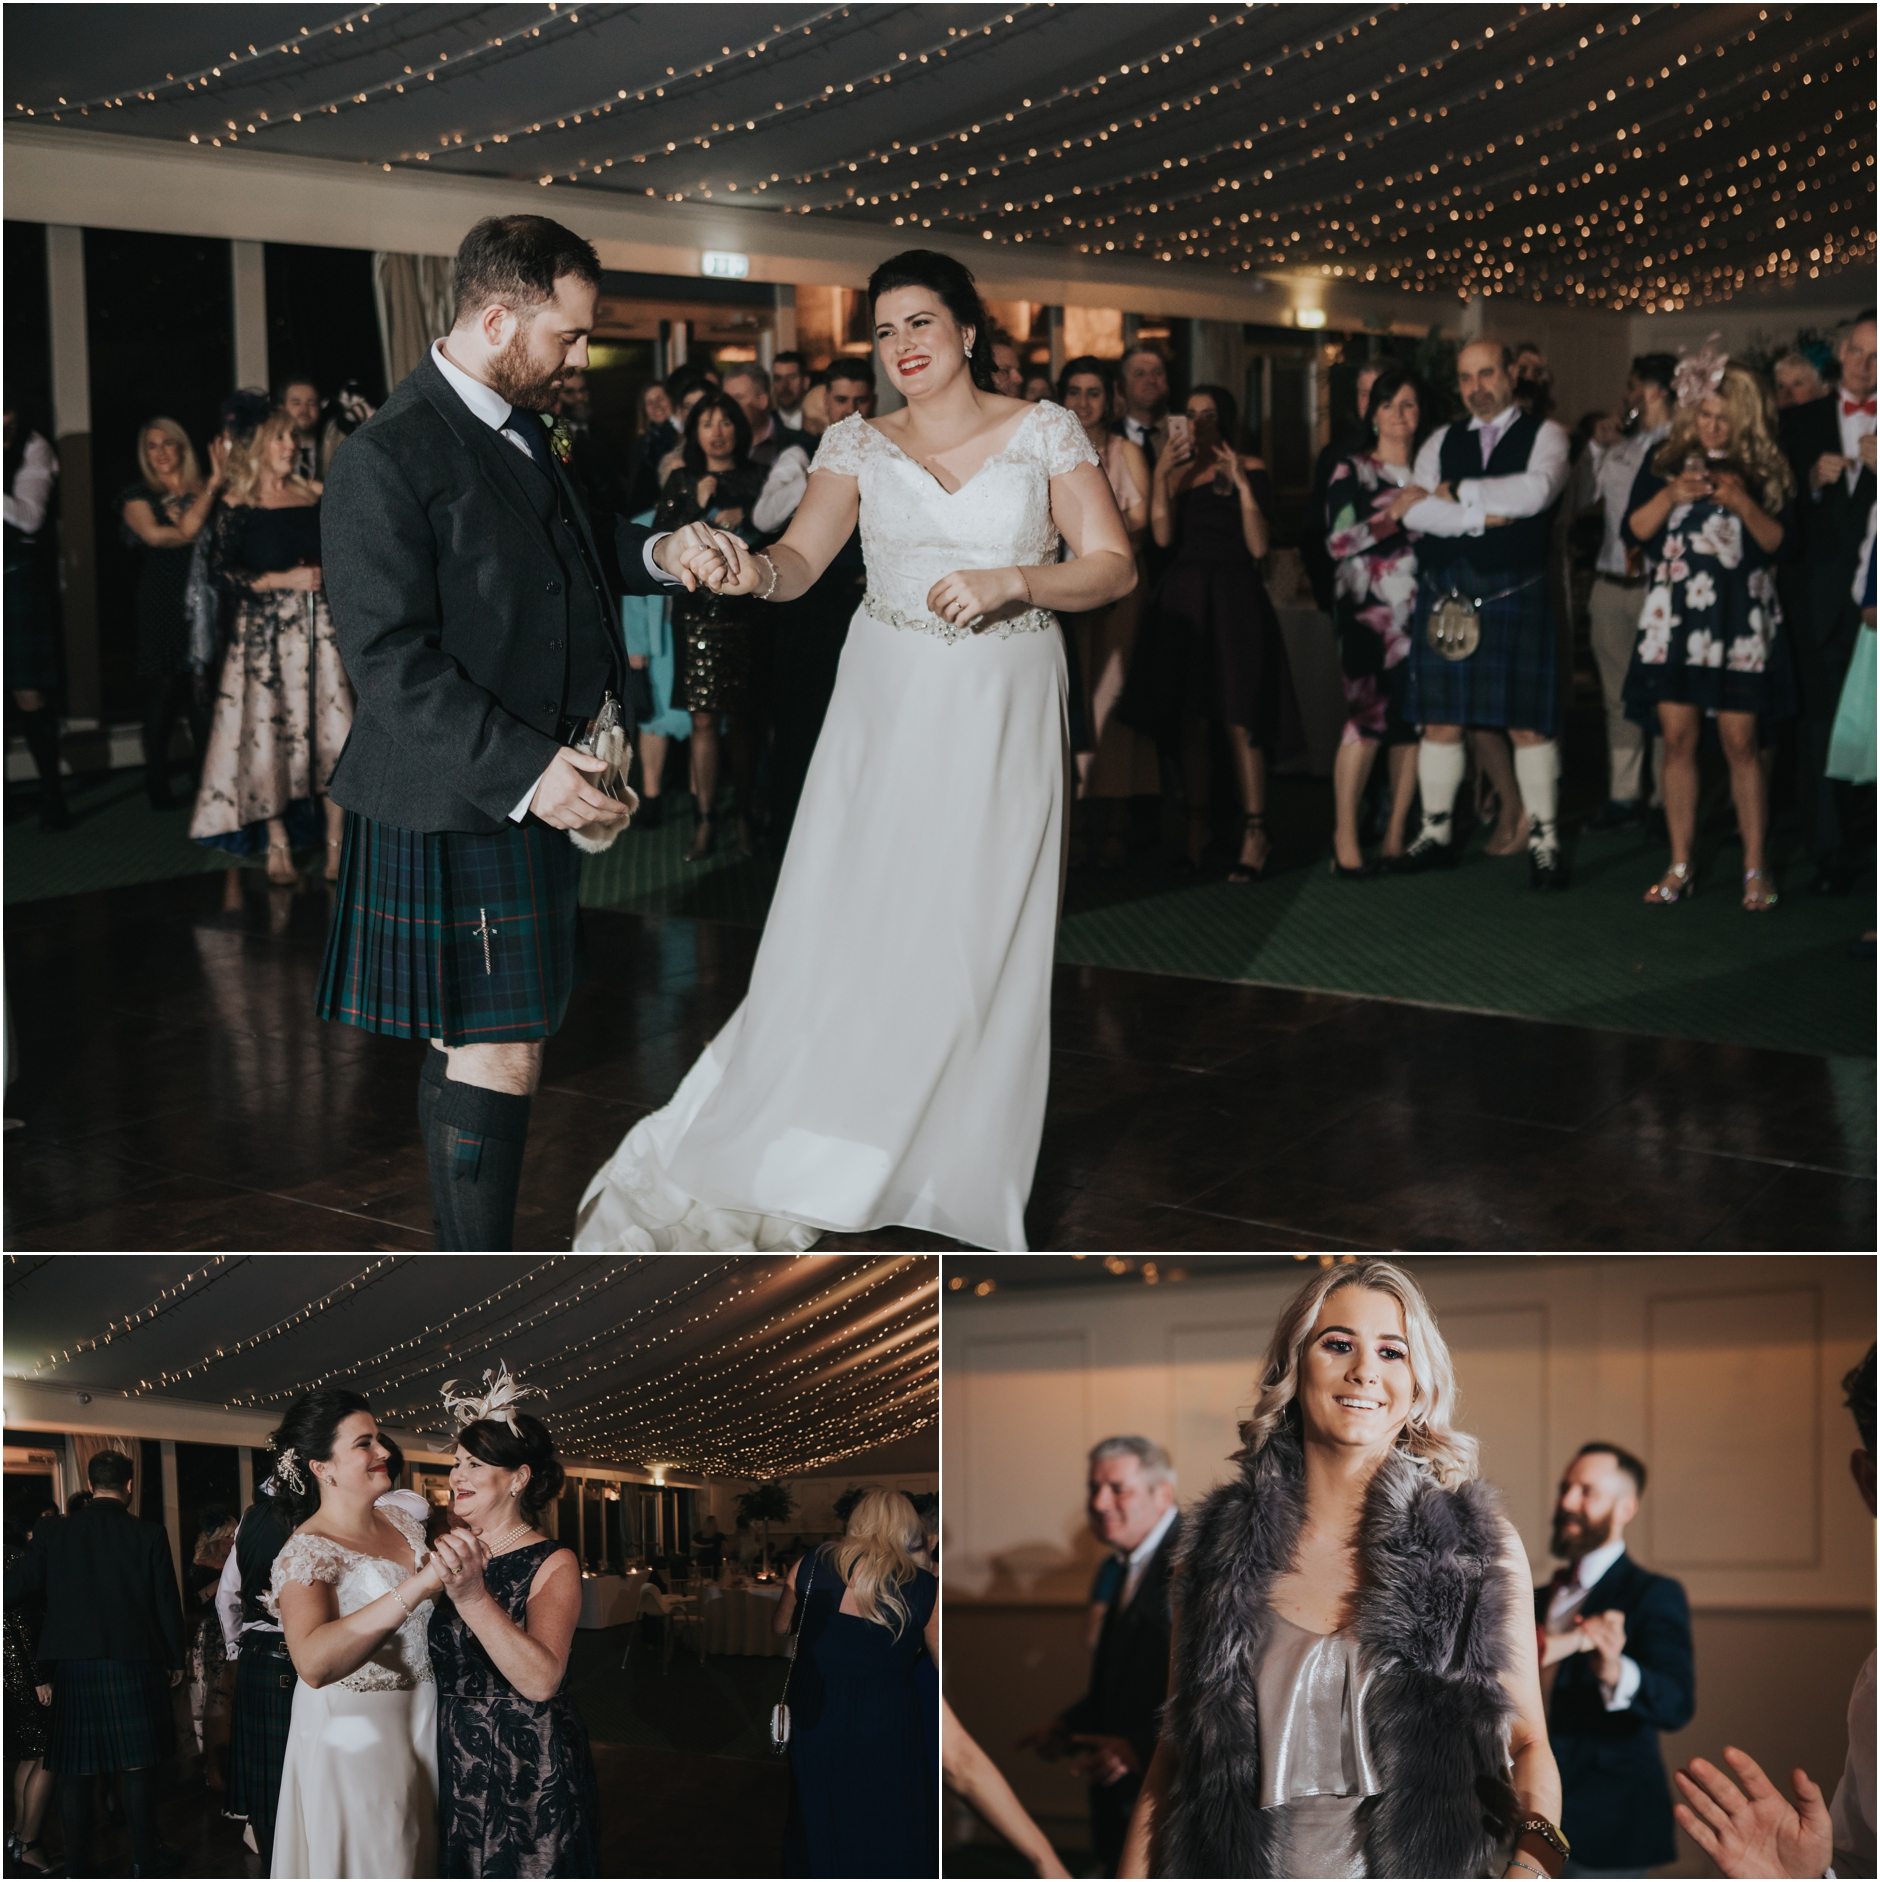 dundas castle wedding winter edinburgh south queensferry